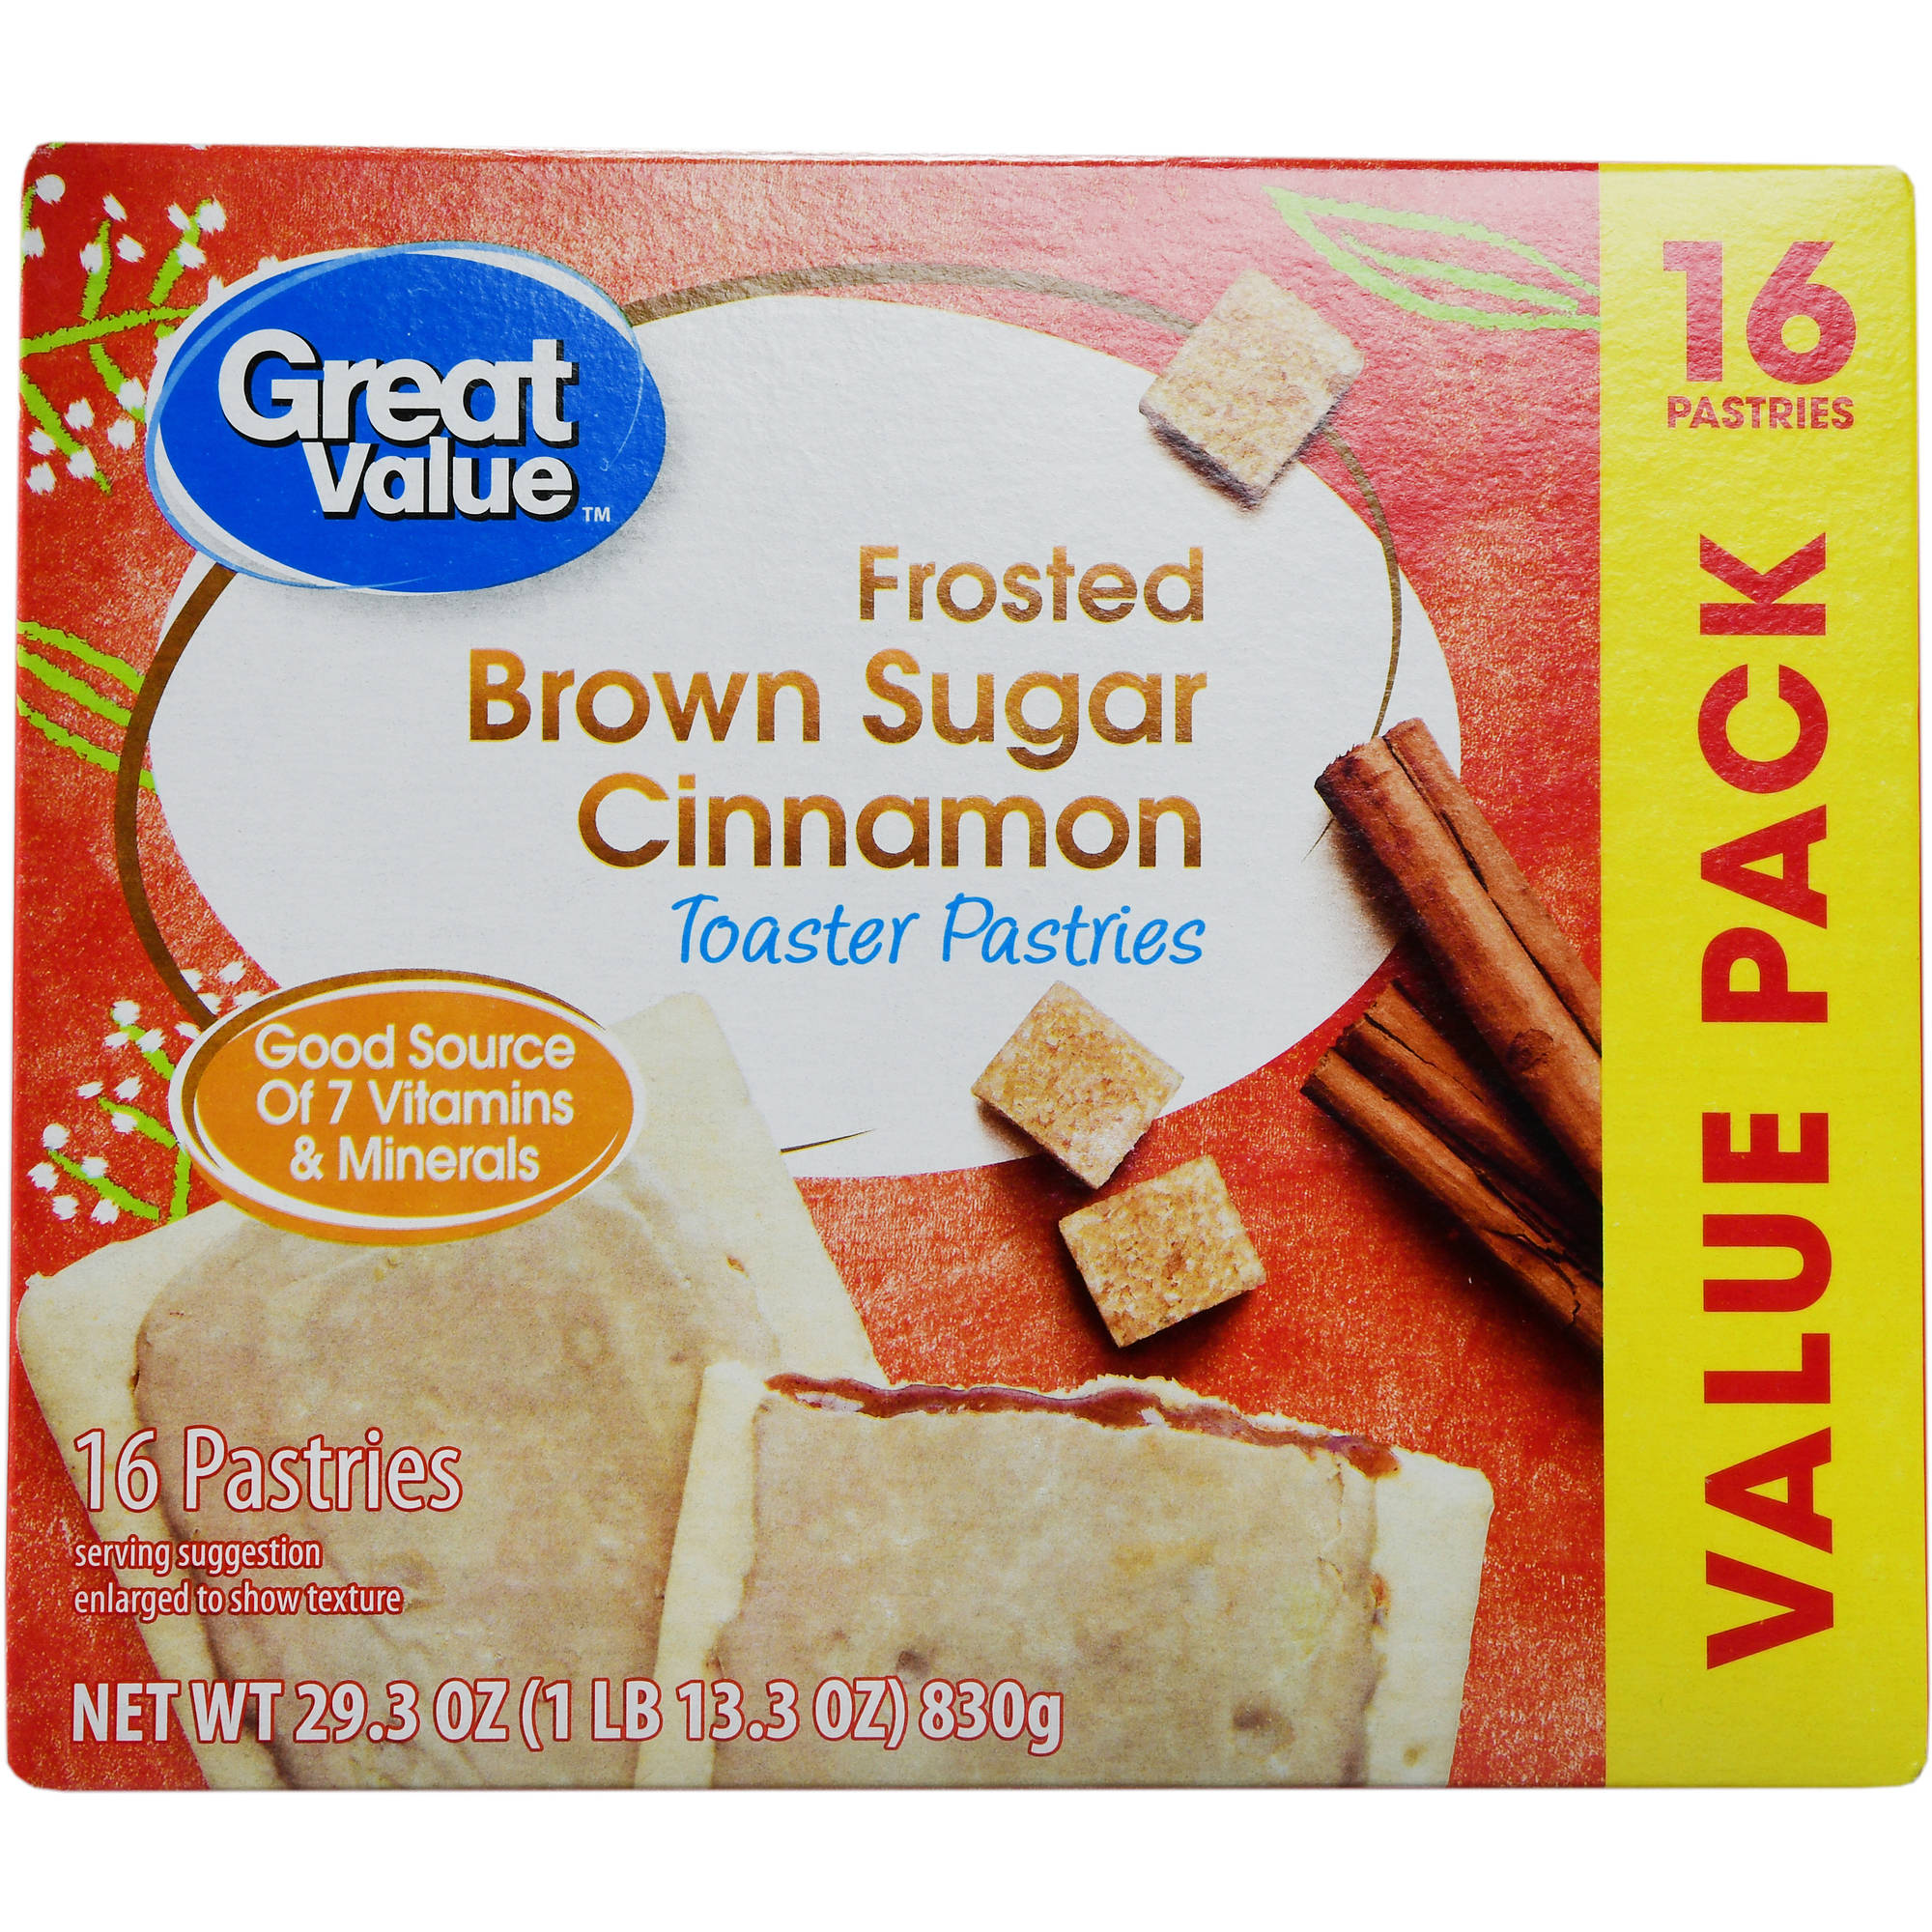 Great Value Frosted Brown Sugar Cinnamon Toaster Pastries, 16 count